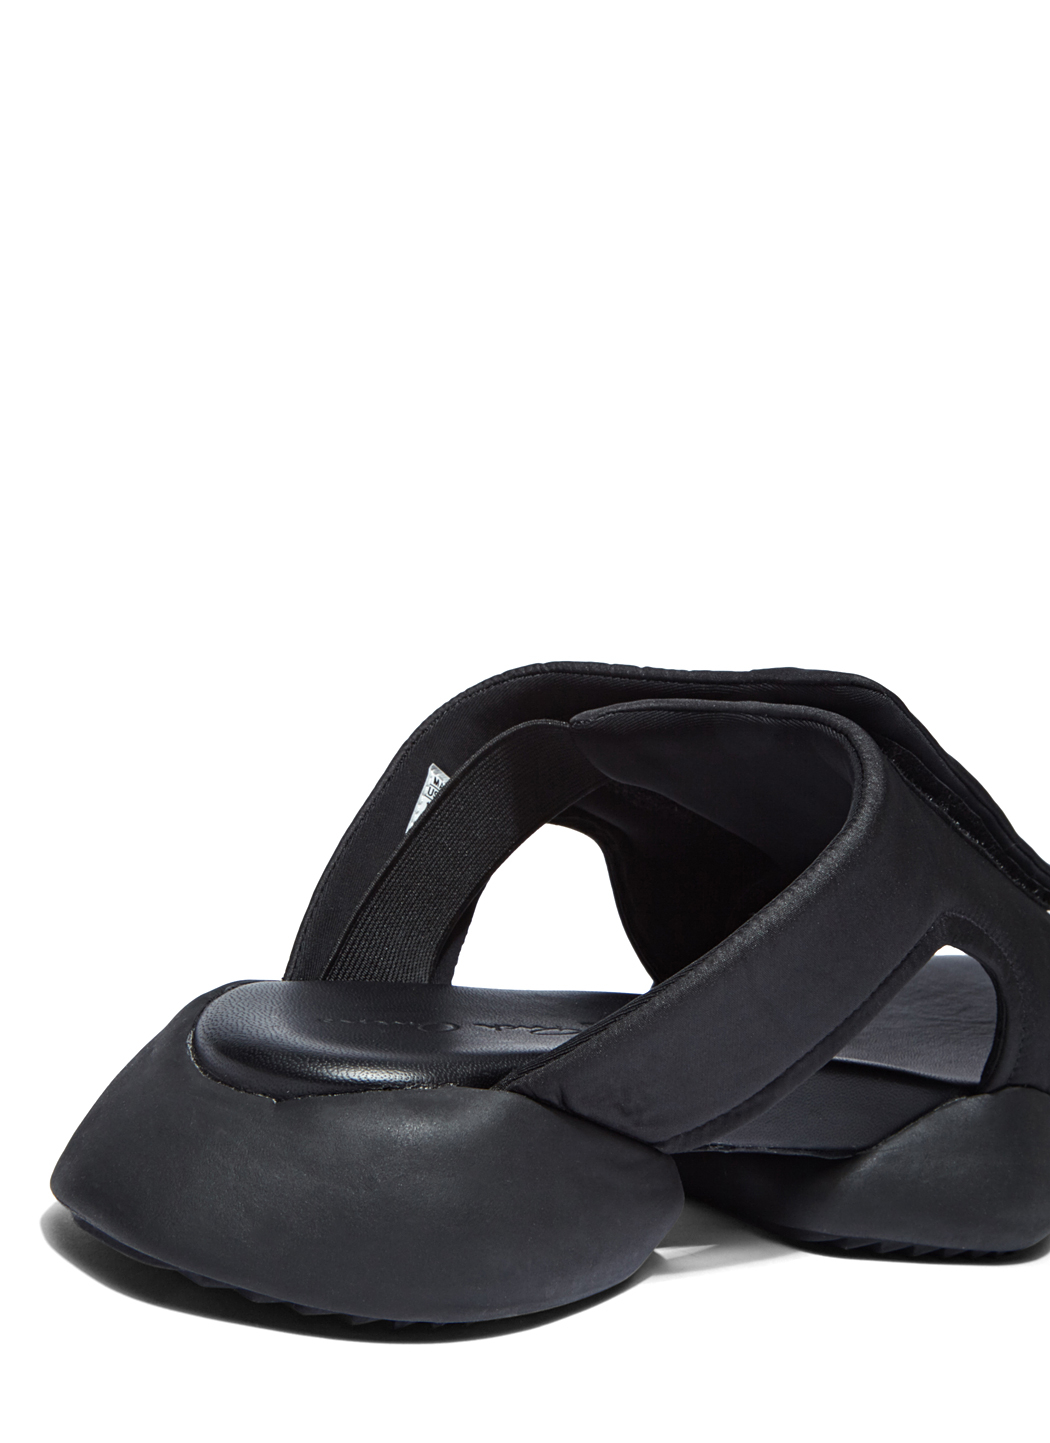 4bca86ce9ab3 Lyst - Rick Owens X Adidas Women s Velcro Strap Ro Clog Sandals In ...